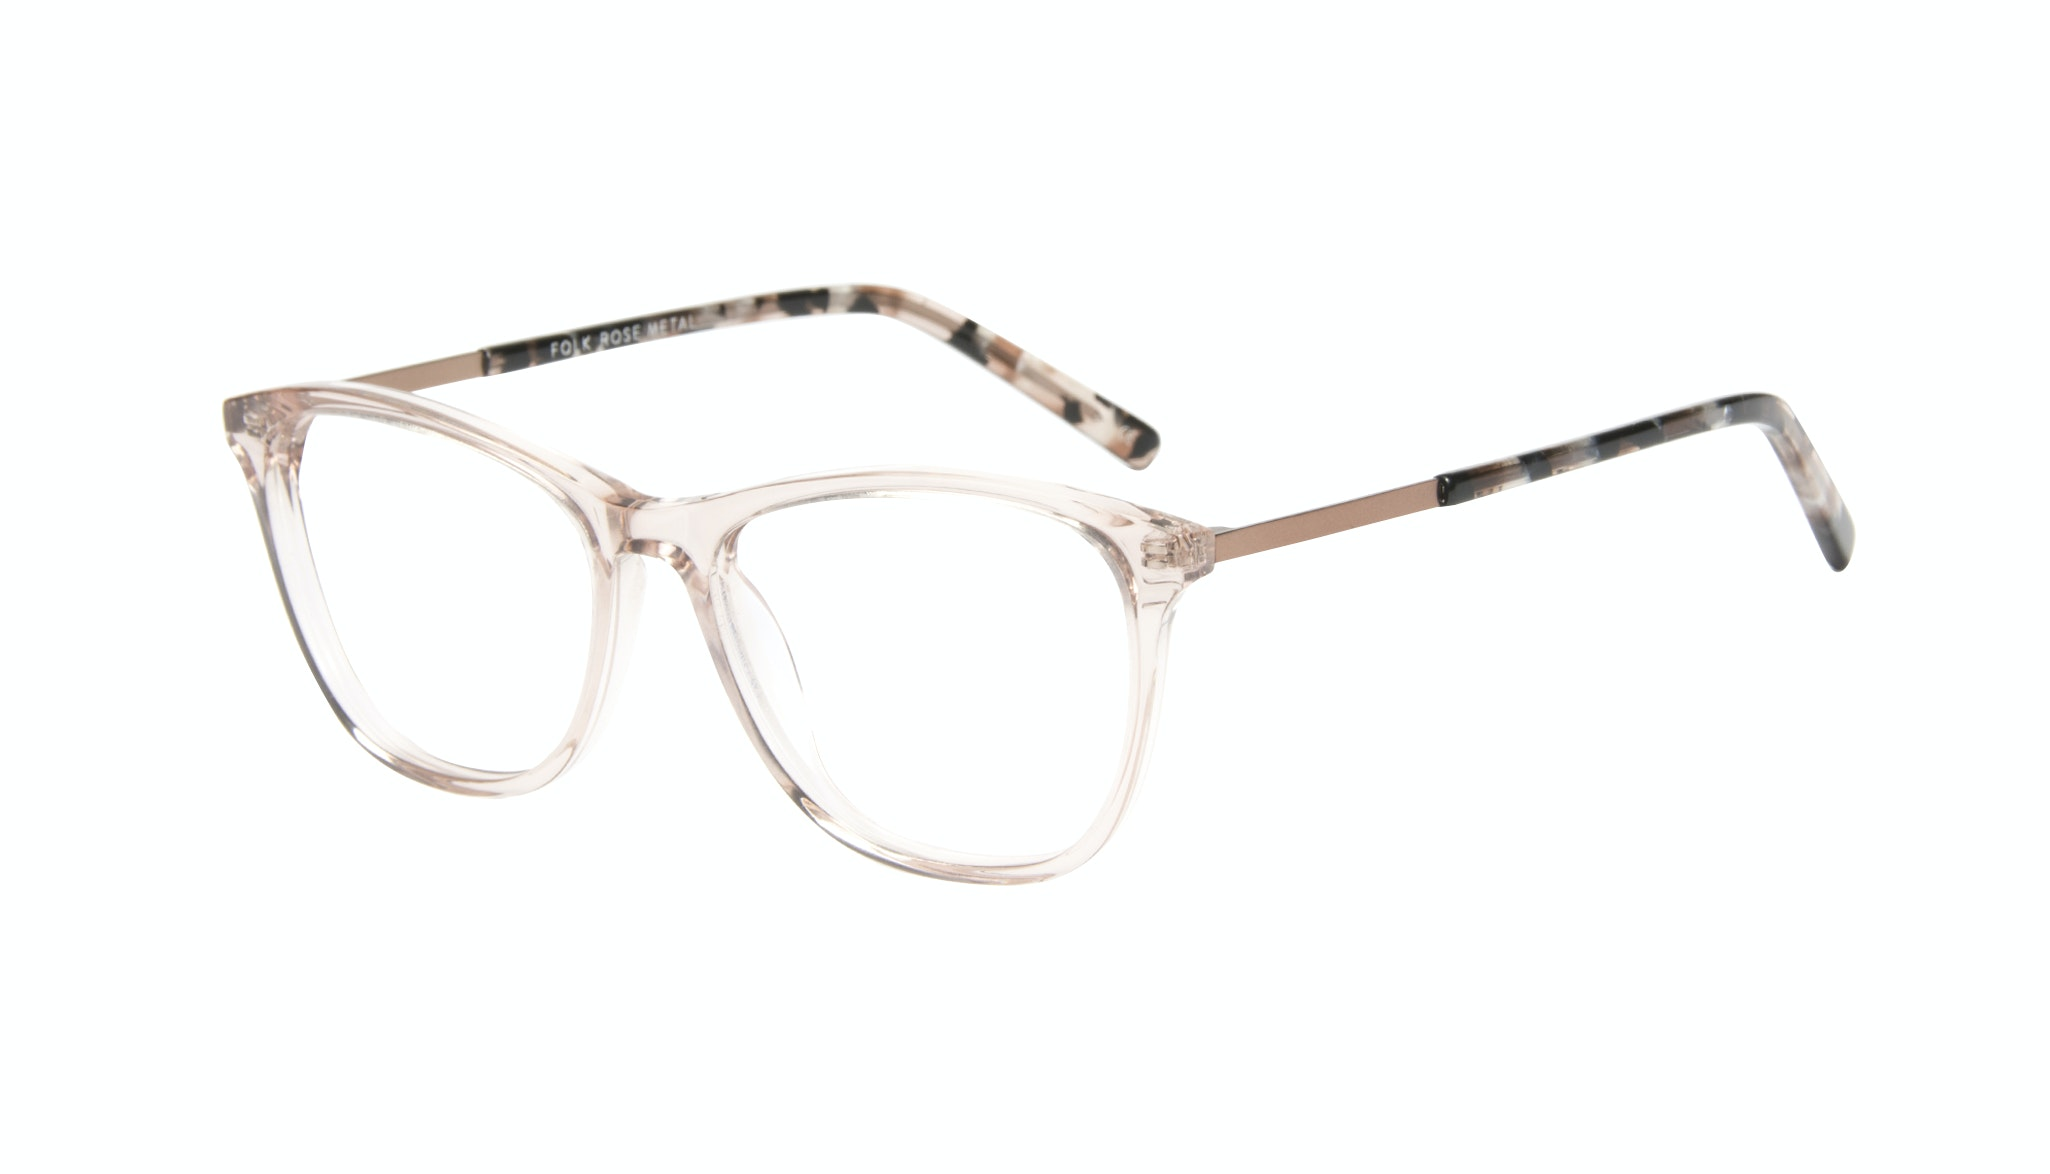 Affordable Fashion Glasses Cat Eye Rectangle Eyeglasses Women Folk Rose Metal Tilt